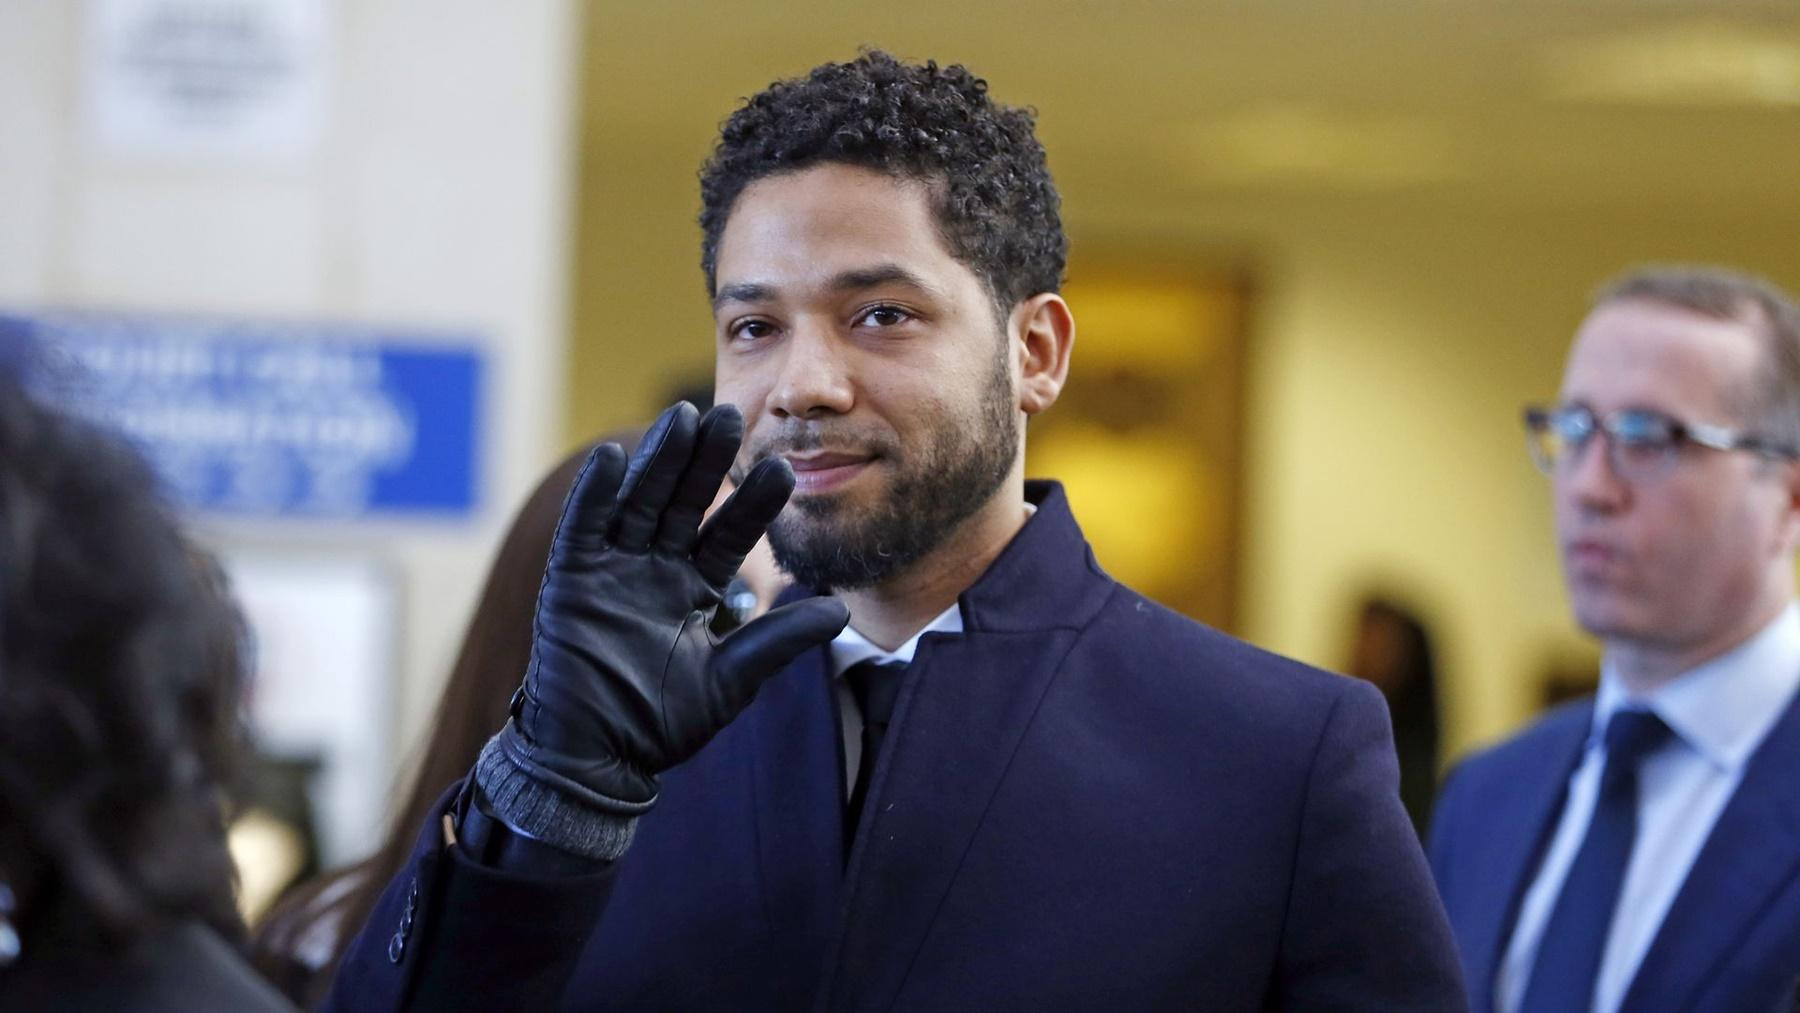 Jussie Smollett's Dropped Charges Raise Questions, Enrage Police Officers Who Are Going After Cook County State's Attorney Kim Foxx